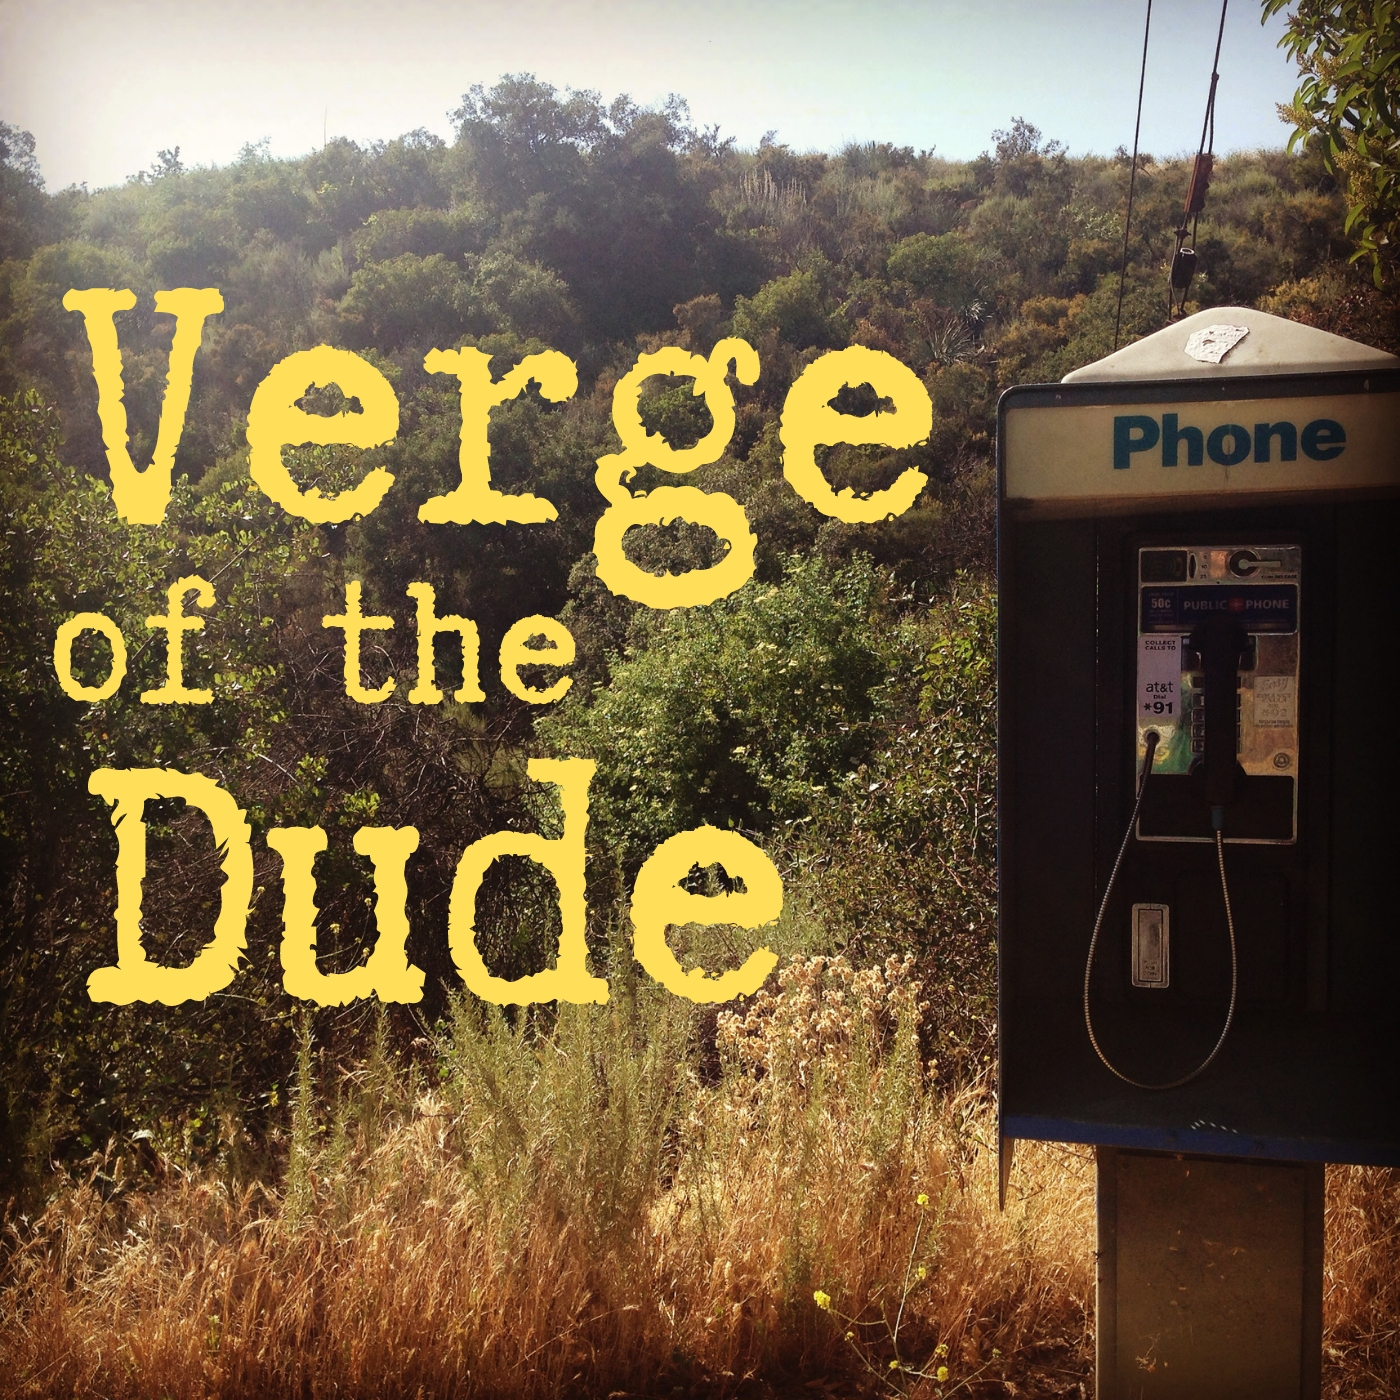 Verge of the Dude show art